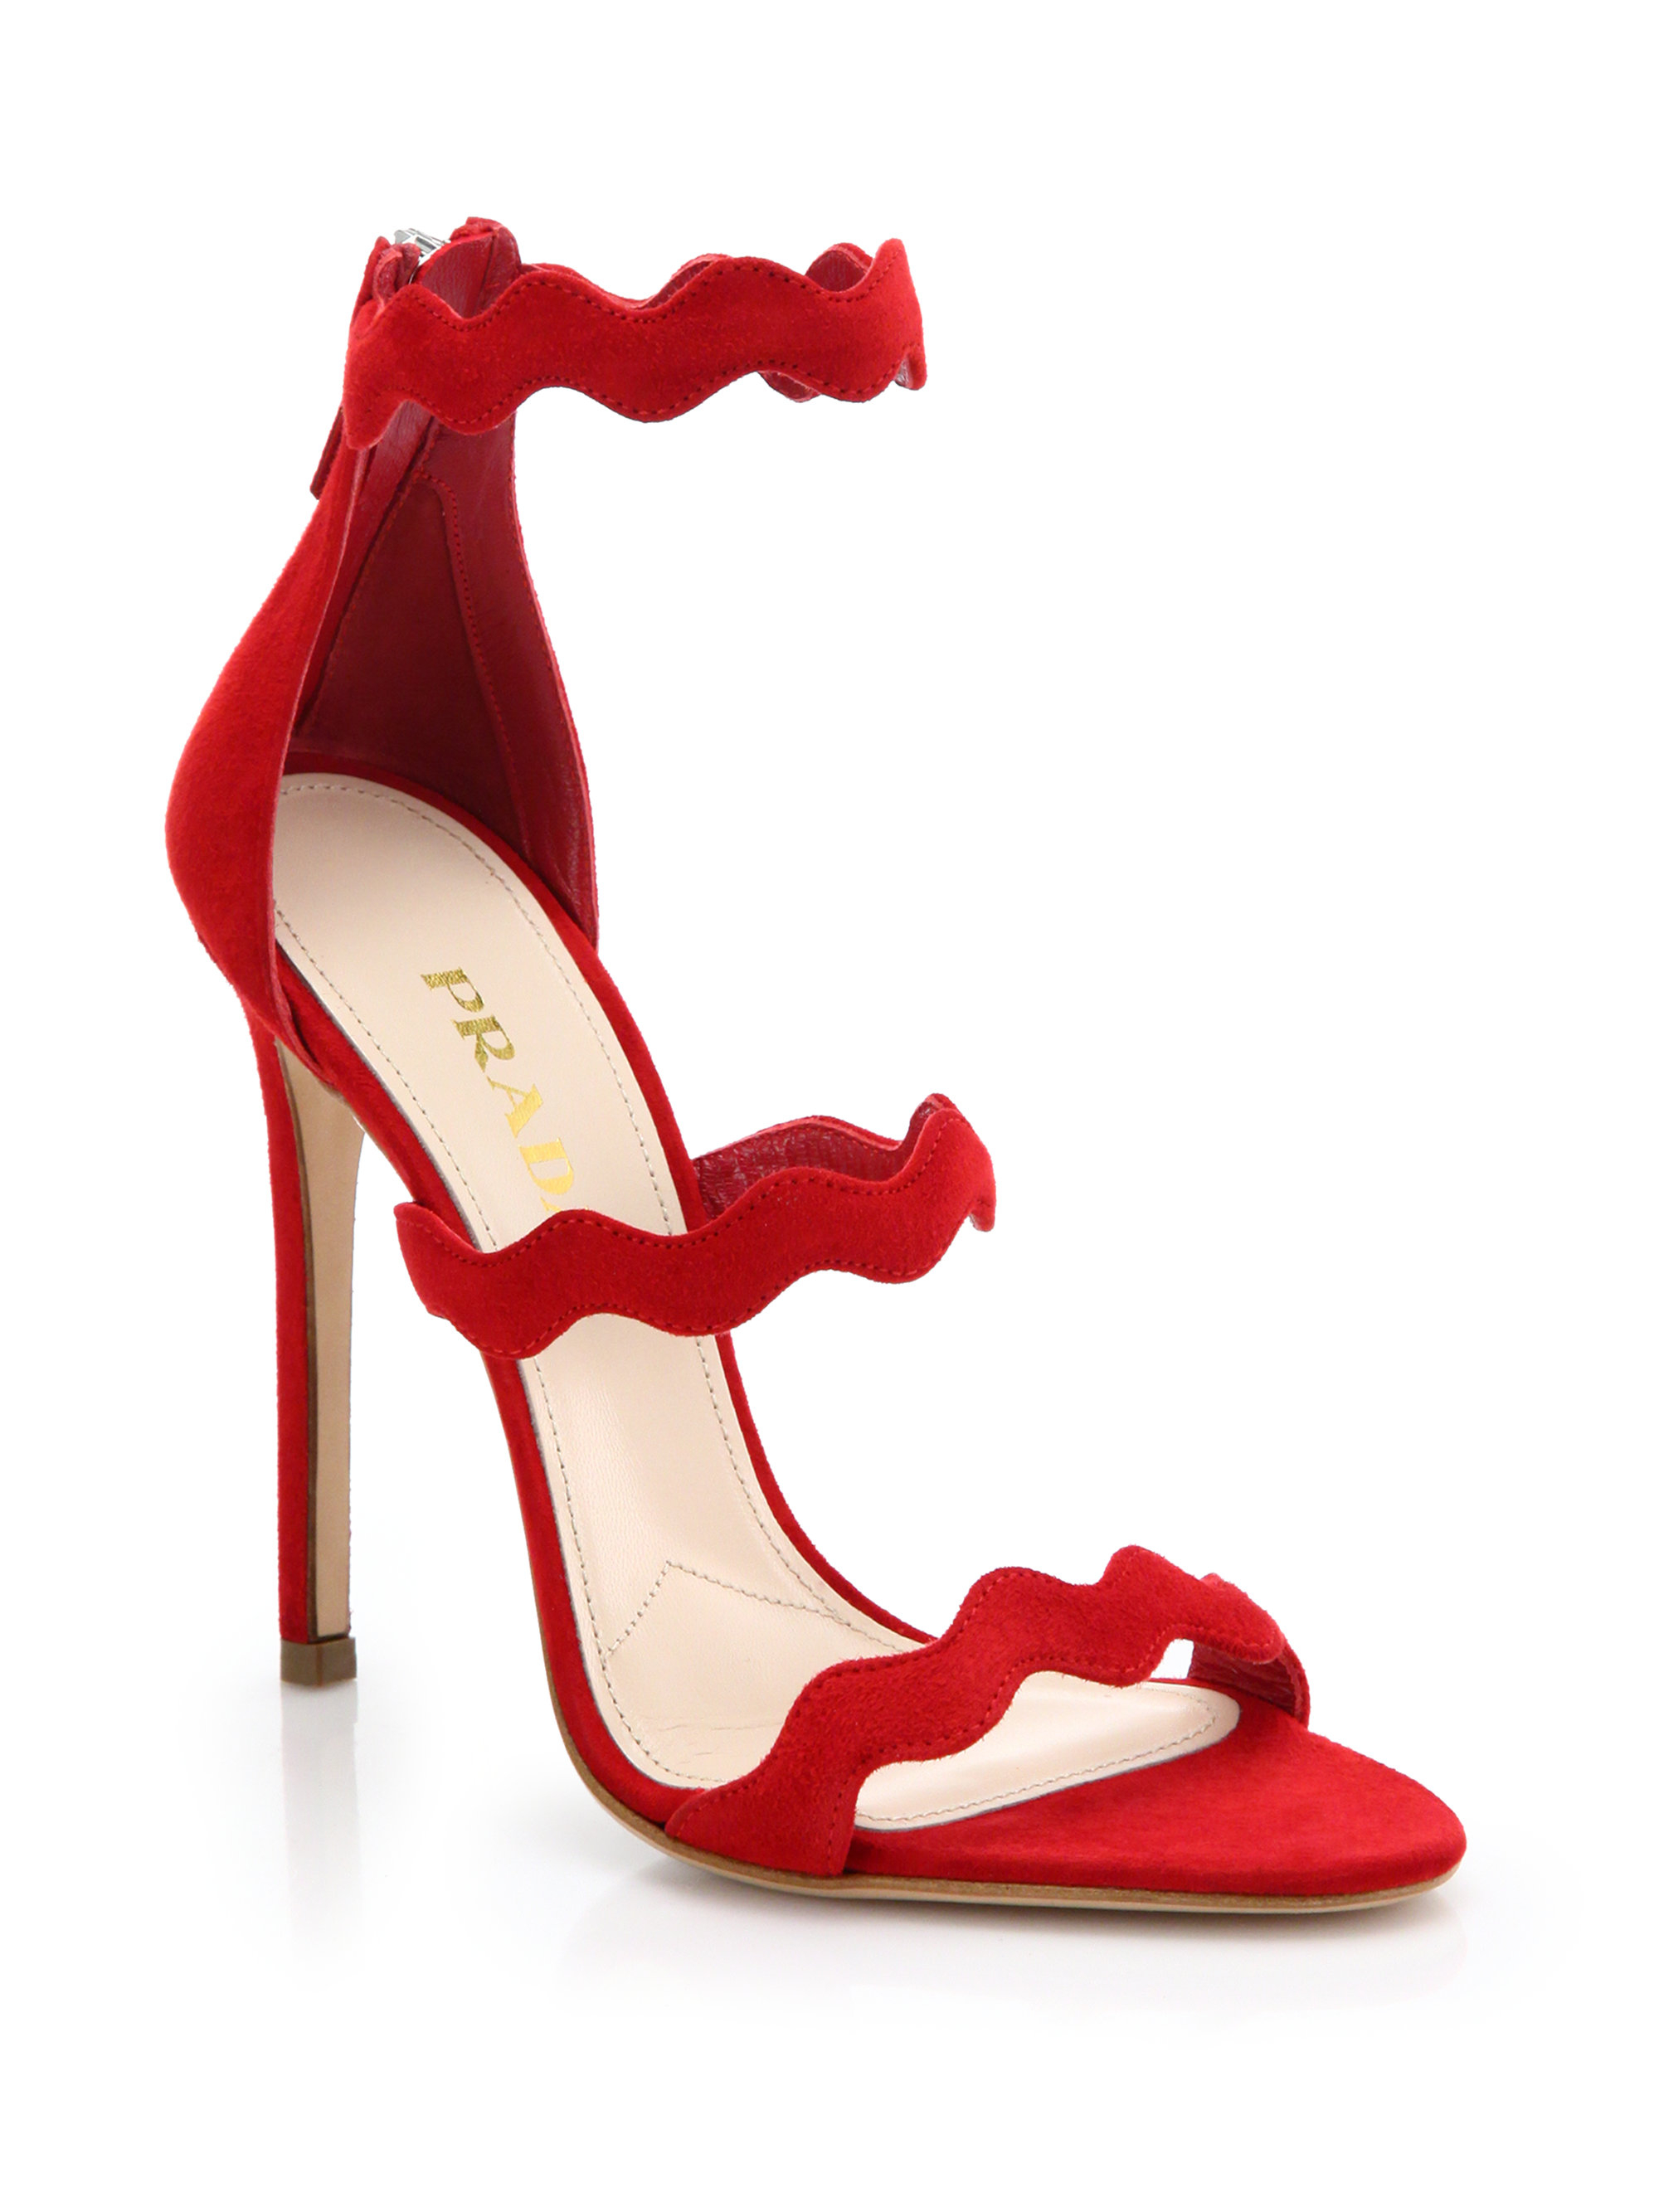 fb755b87c95 Prada Red Scalloped Suede Sandals